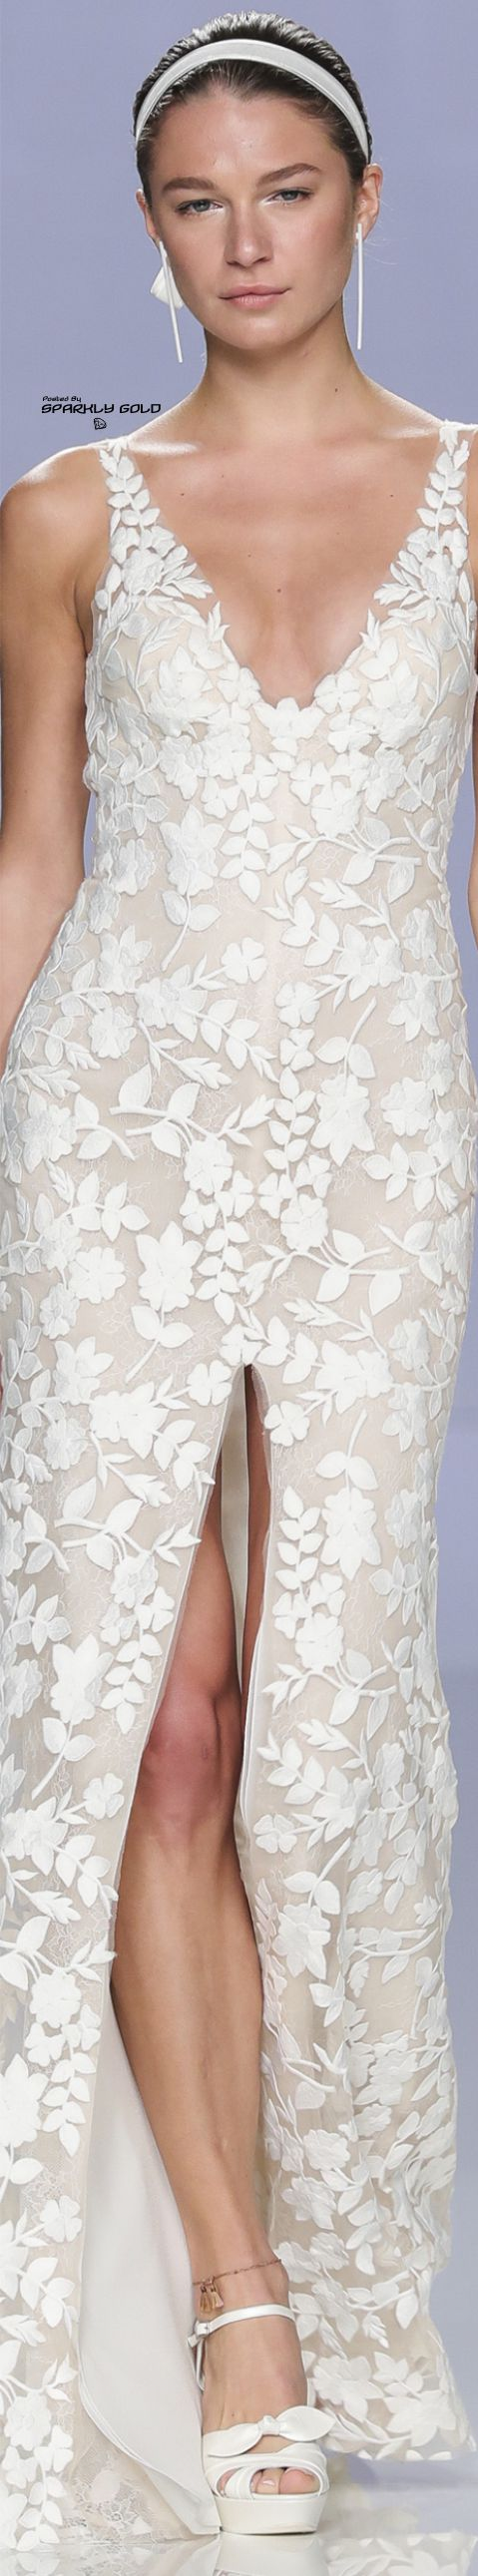 Rosa clará bridal spring the gown boutique pinterest rosa